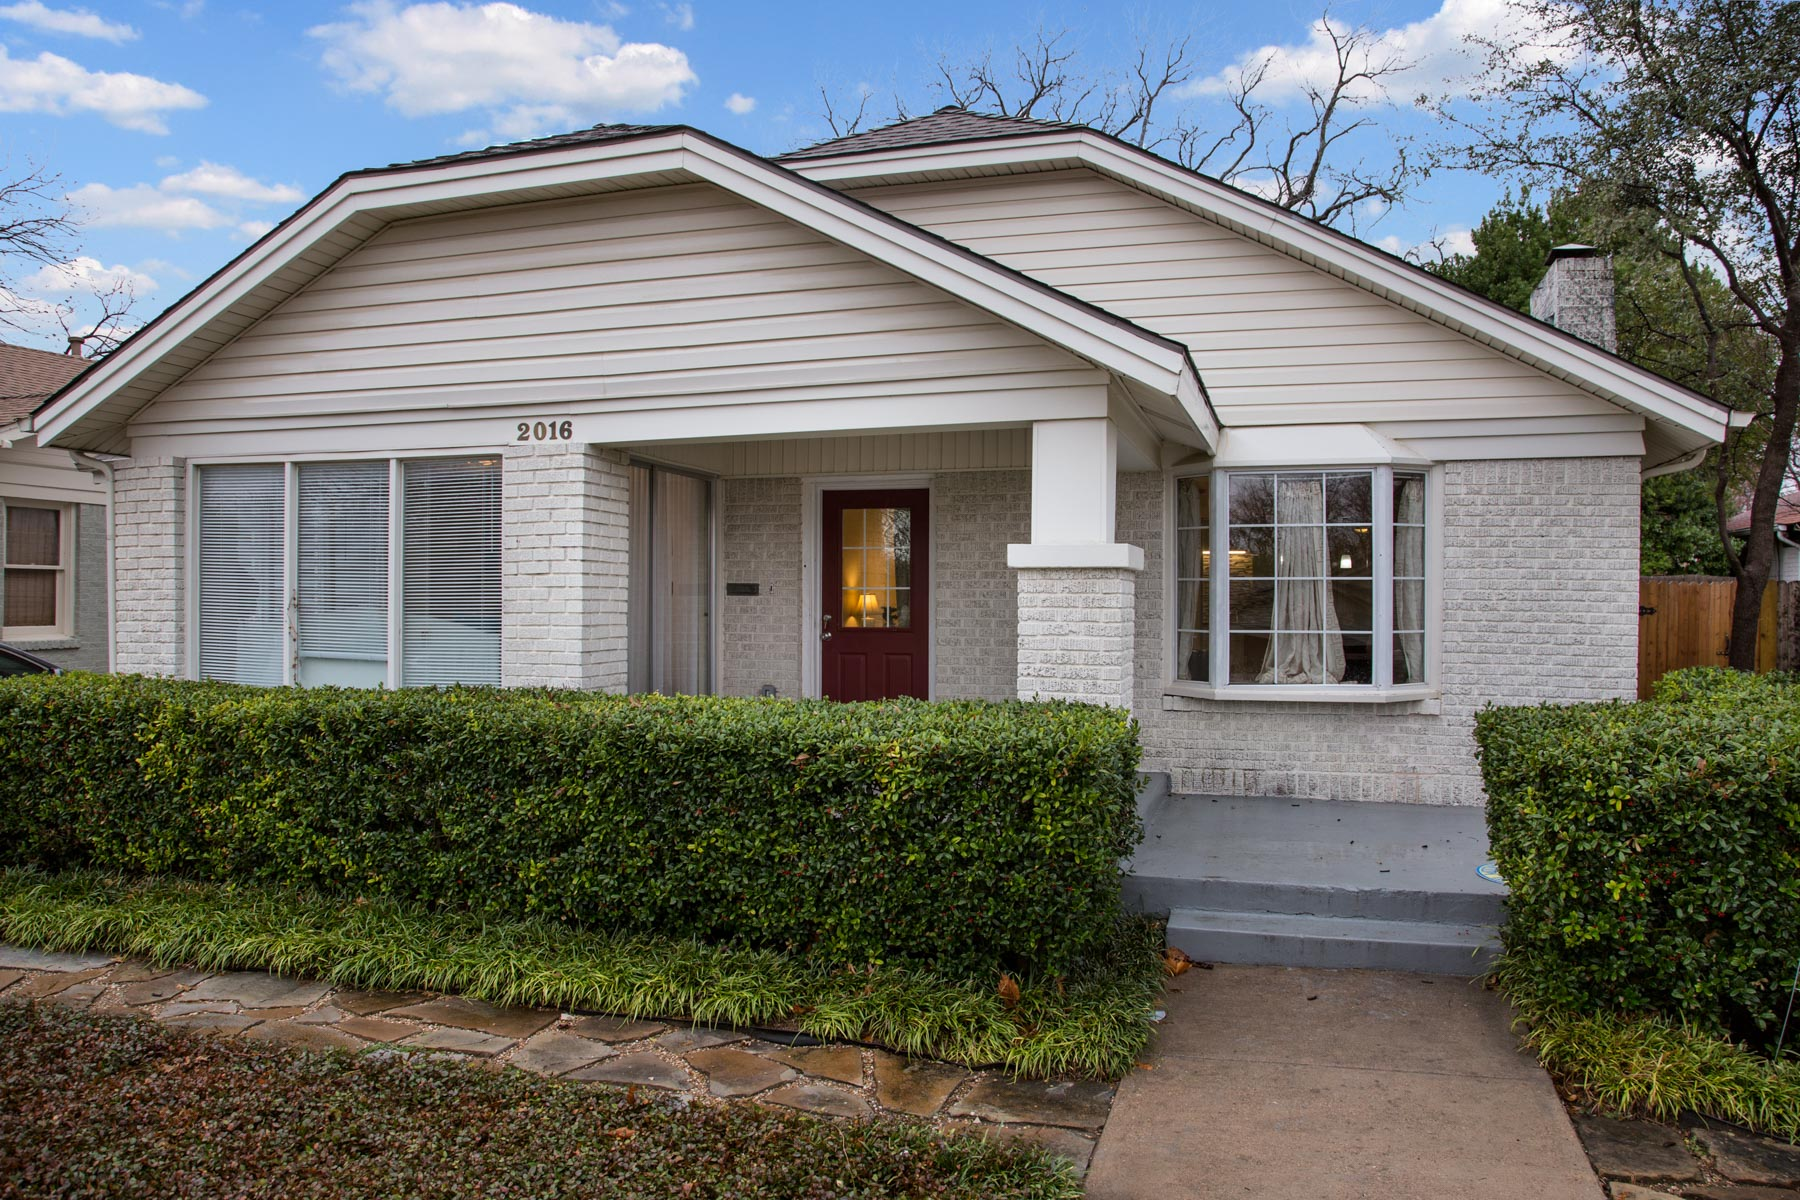 Single Family Home for Sale at 2016 Clover Lane Fort Worth, Texas, 76107 United States